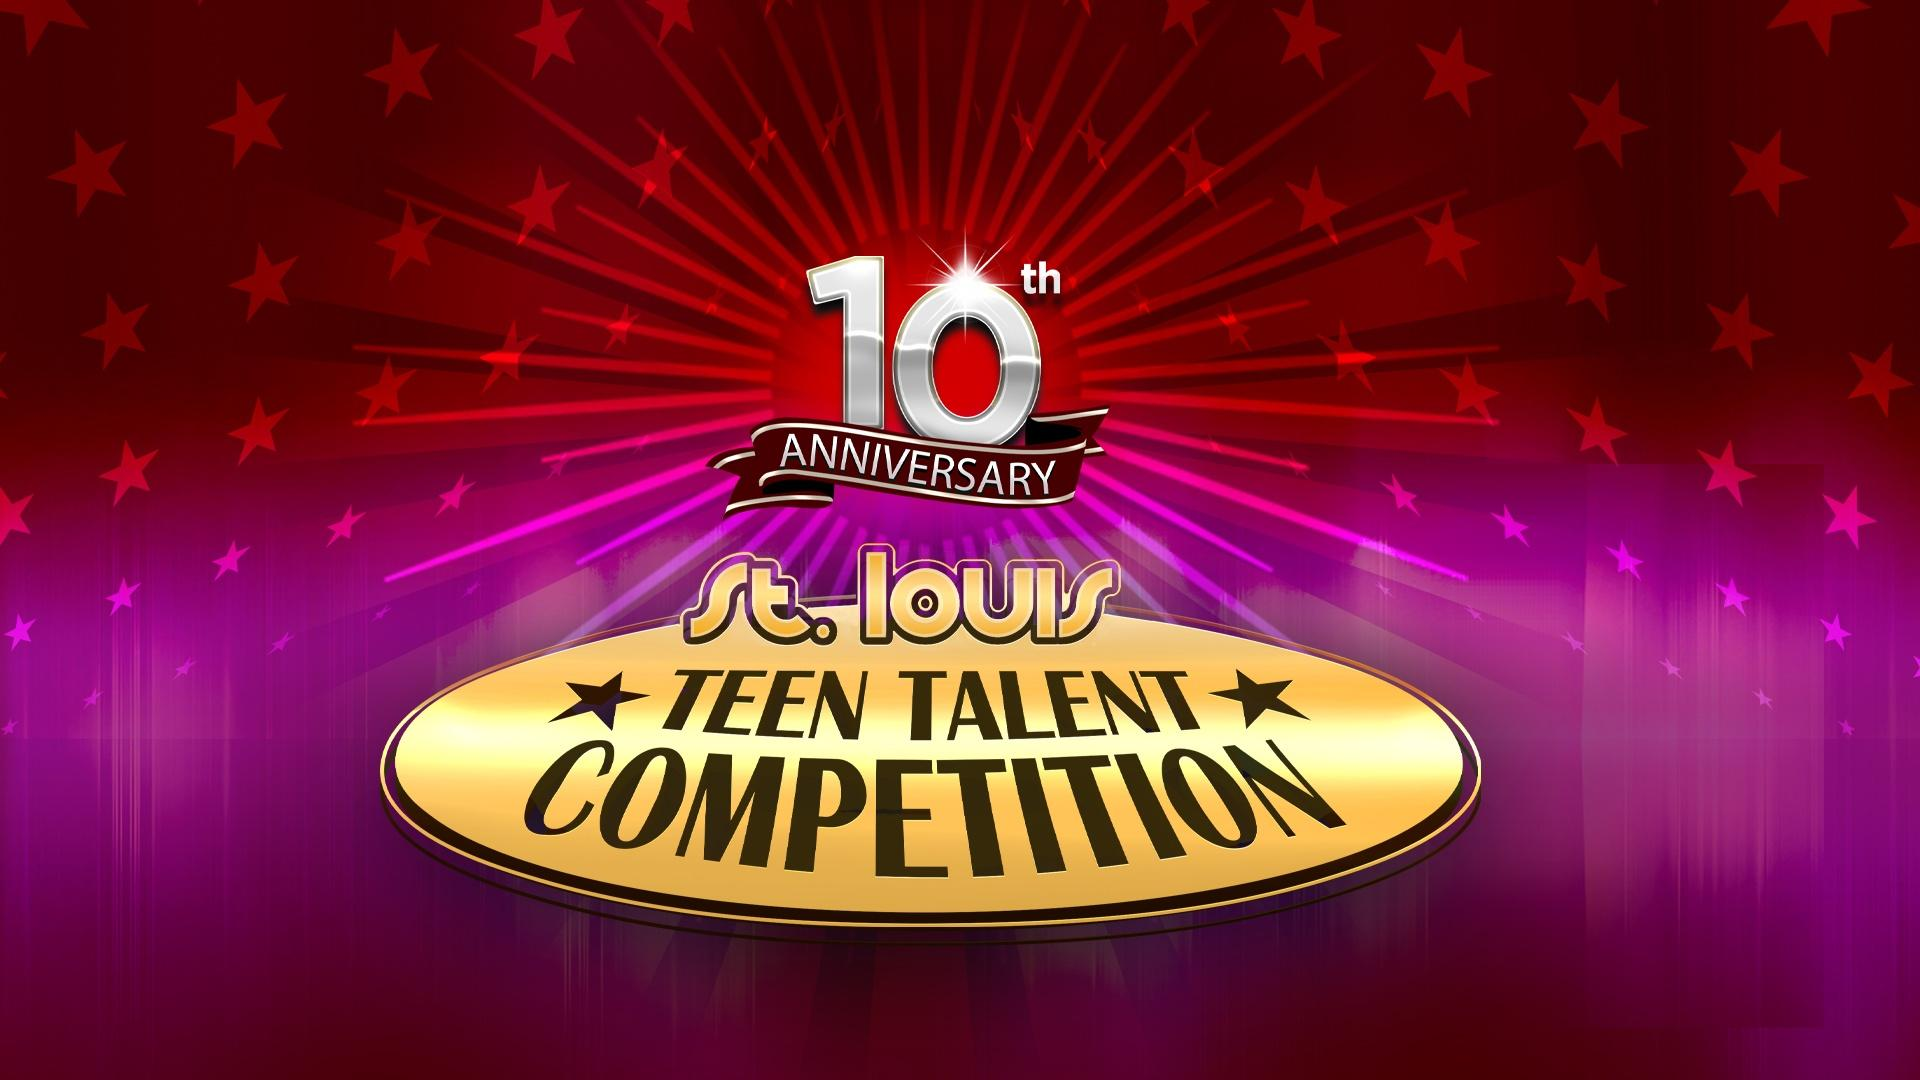 St. Louis Teen Talent Competition 2020